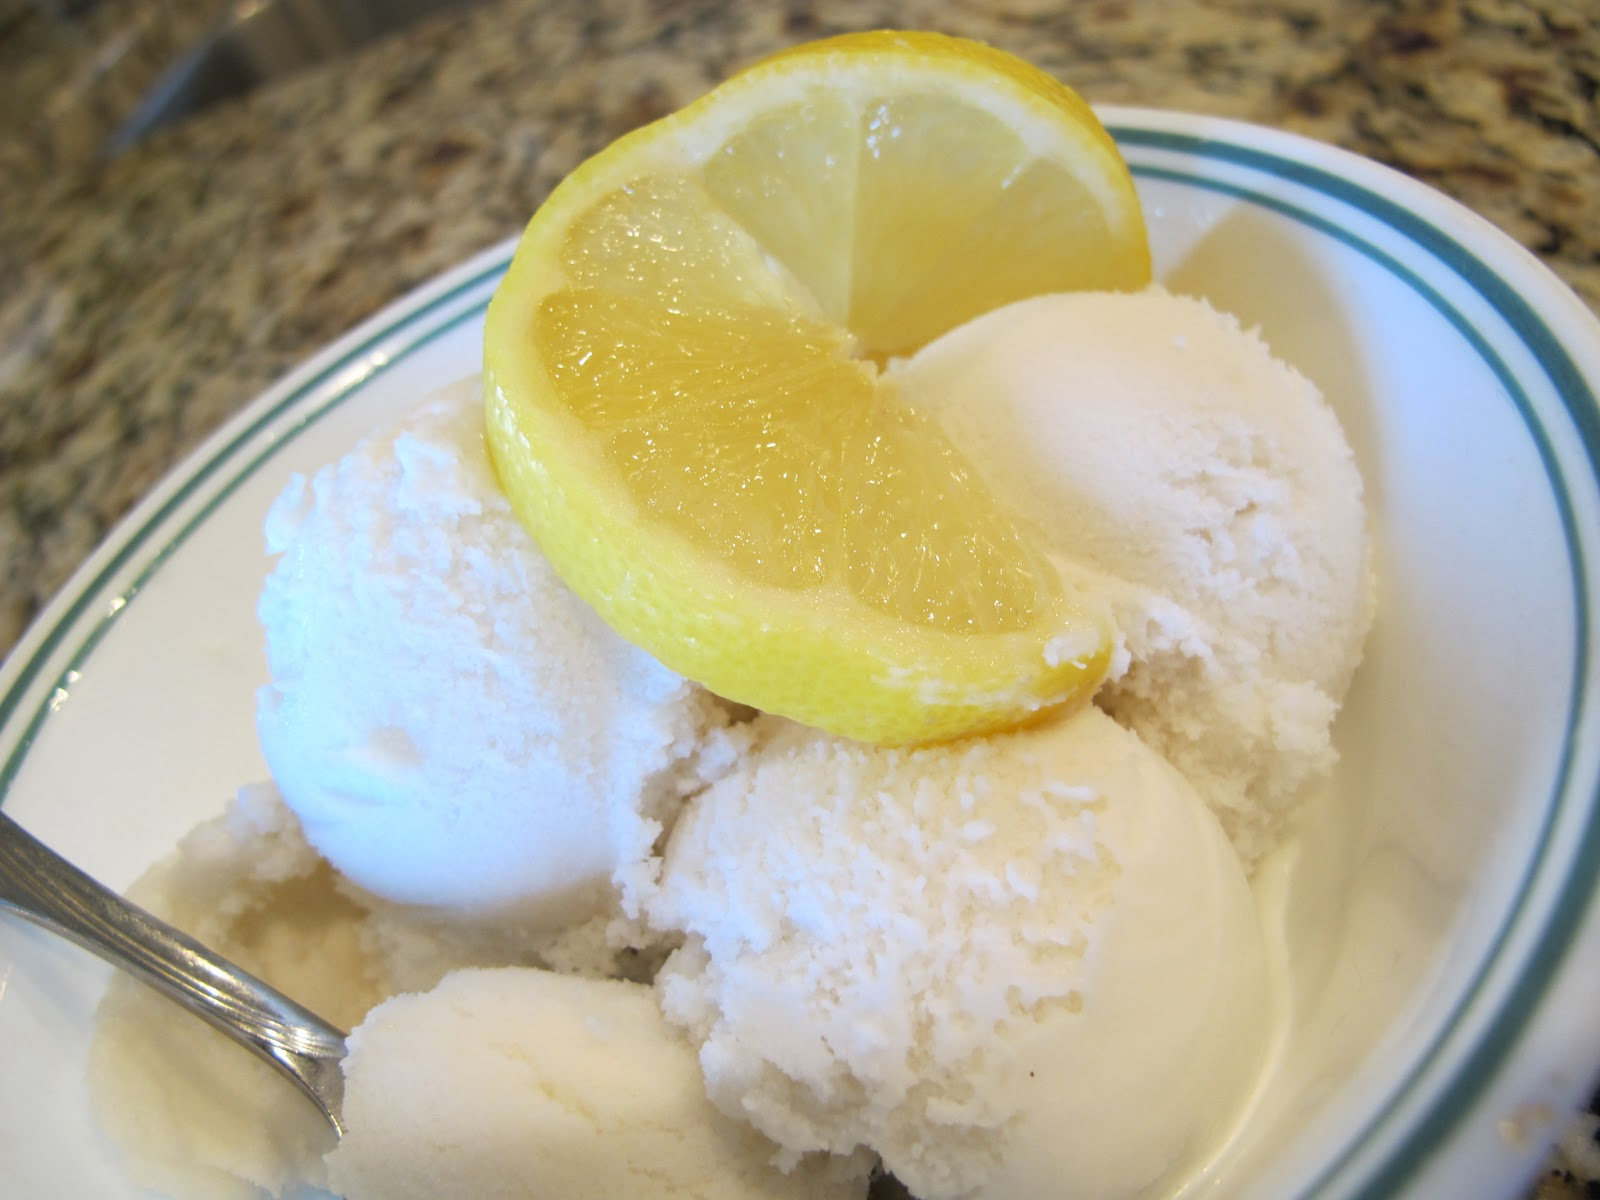 cream lemon ice cream lemon cream pie lemon meringue ice cream ...